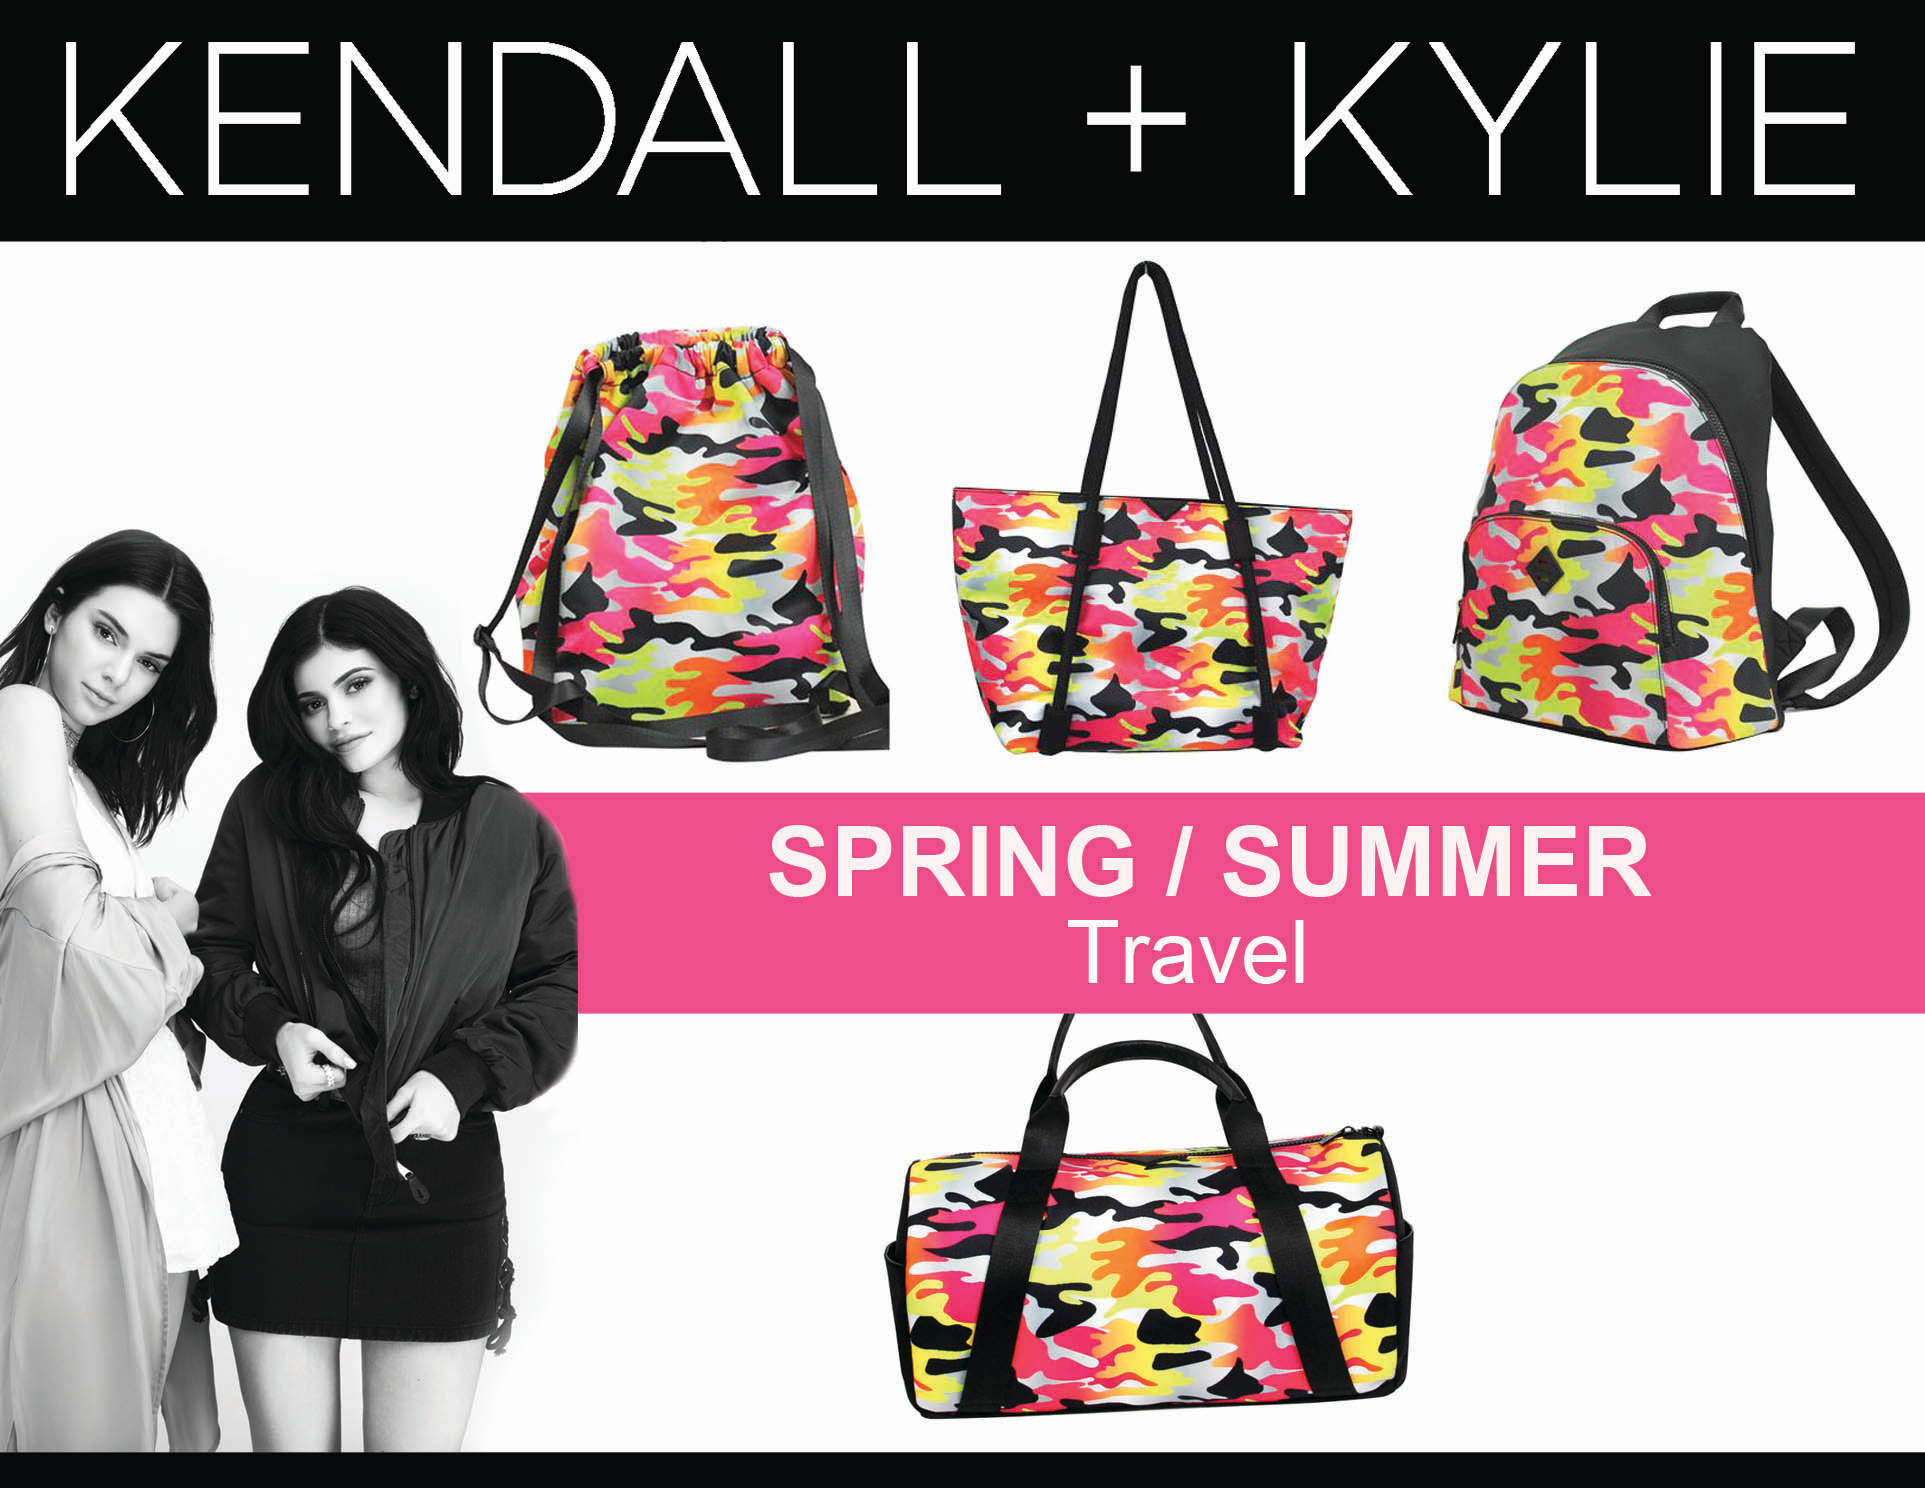 KENDALL + KYLIE Bags - Spring-Summer Tra